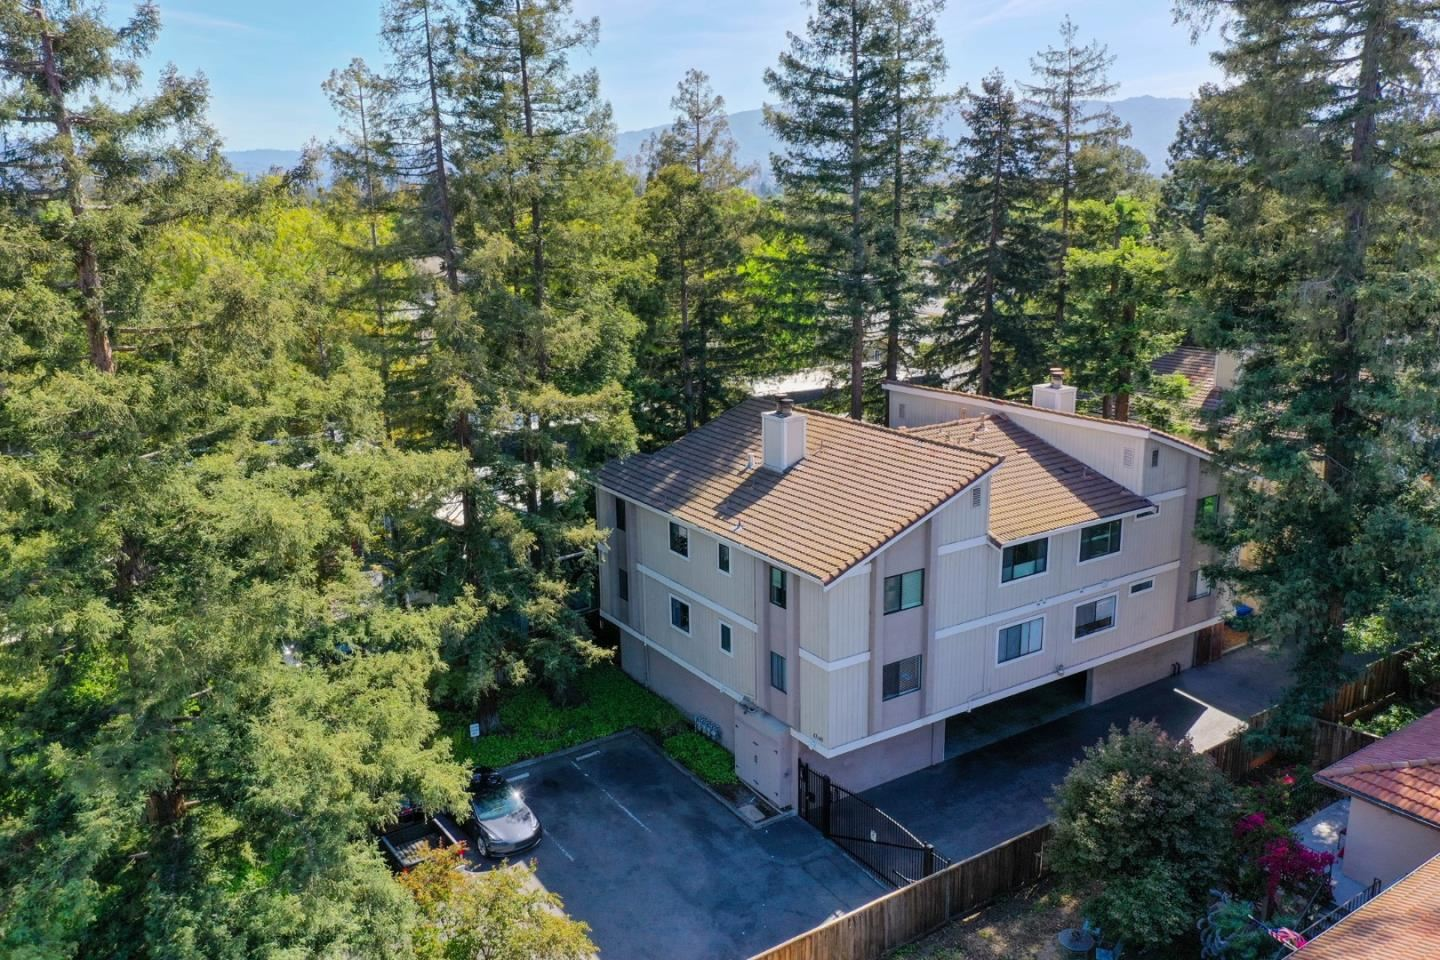 Photo for 49 Dot Avenue #B, CAMPBELL, CA 95008 (MLS # ML81841978)